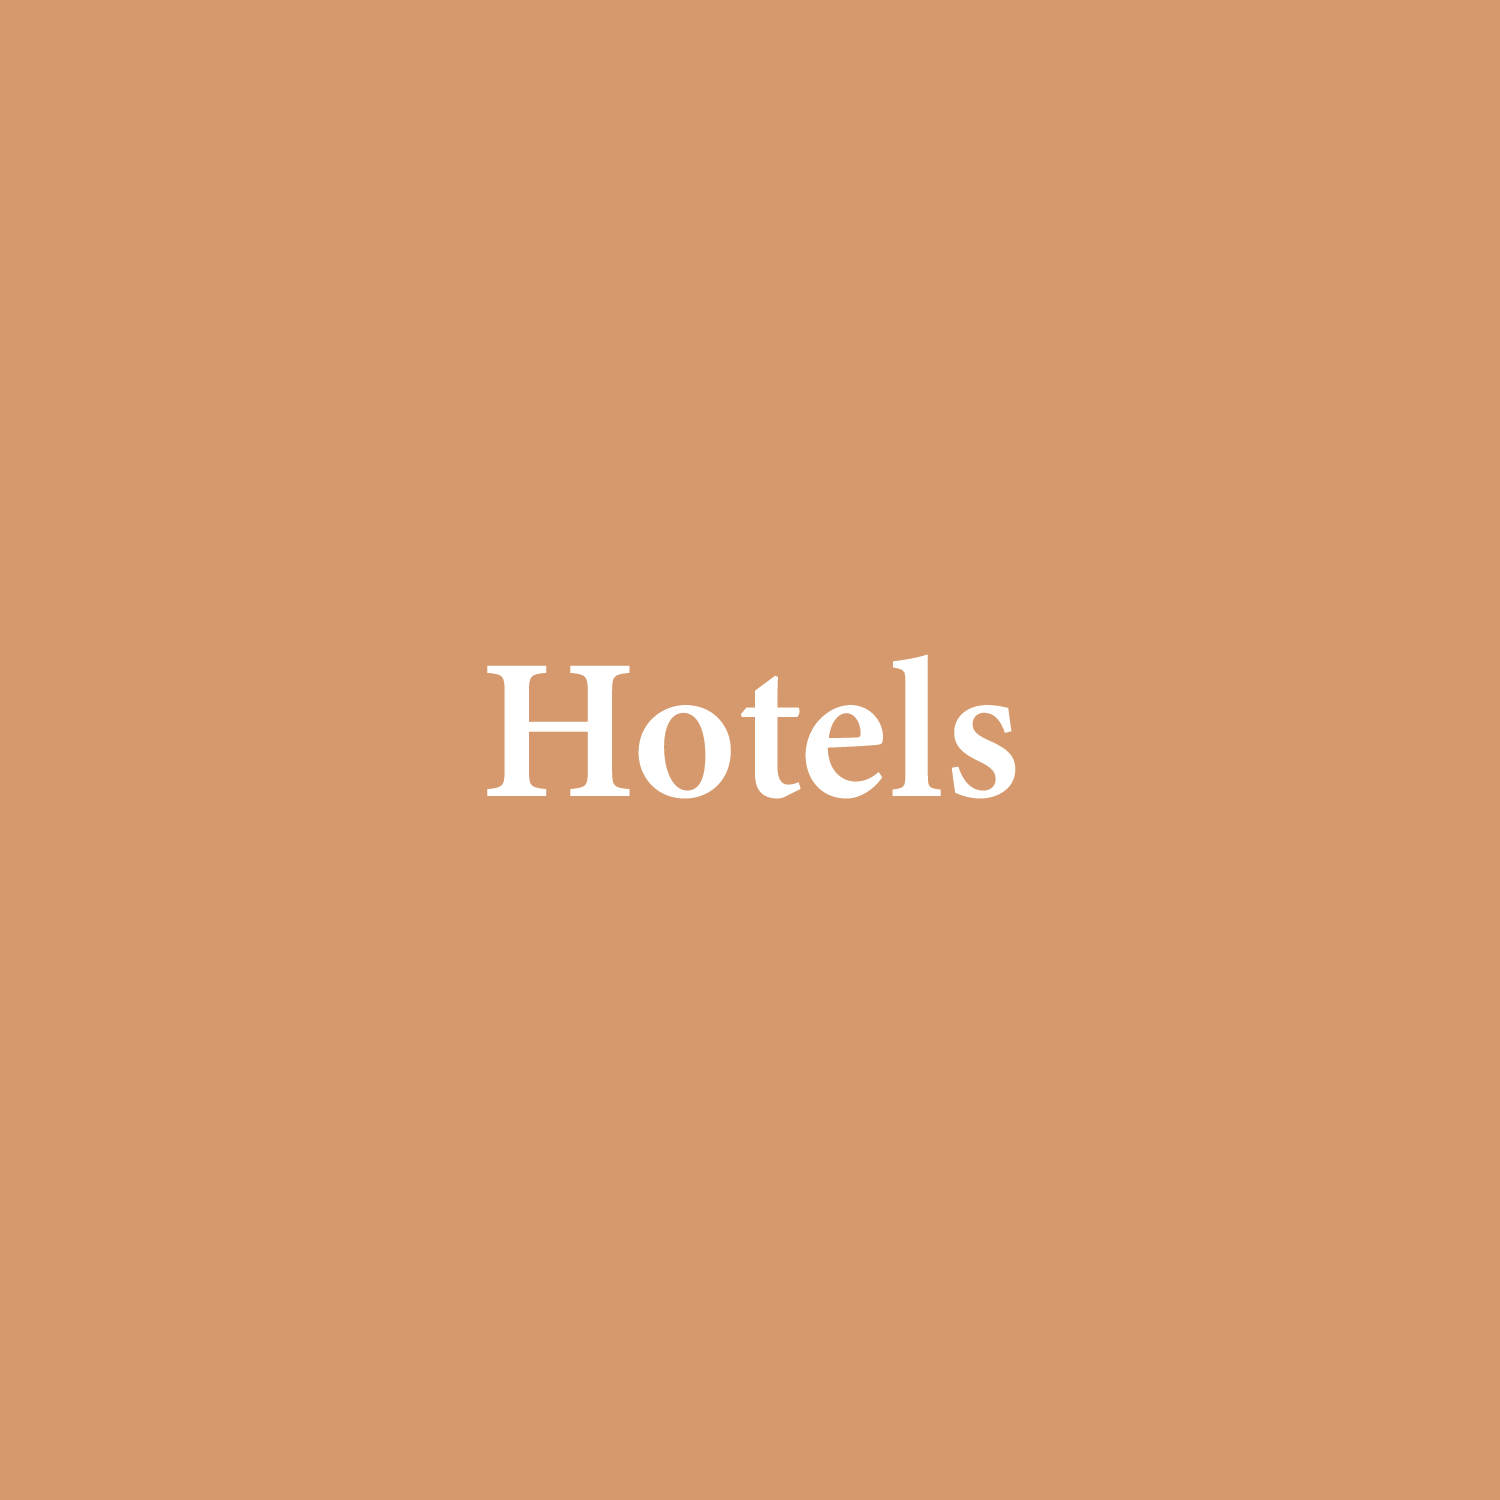 hotels.png